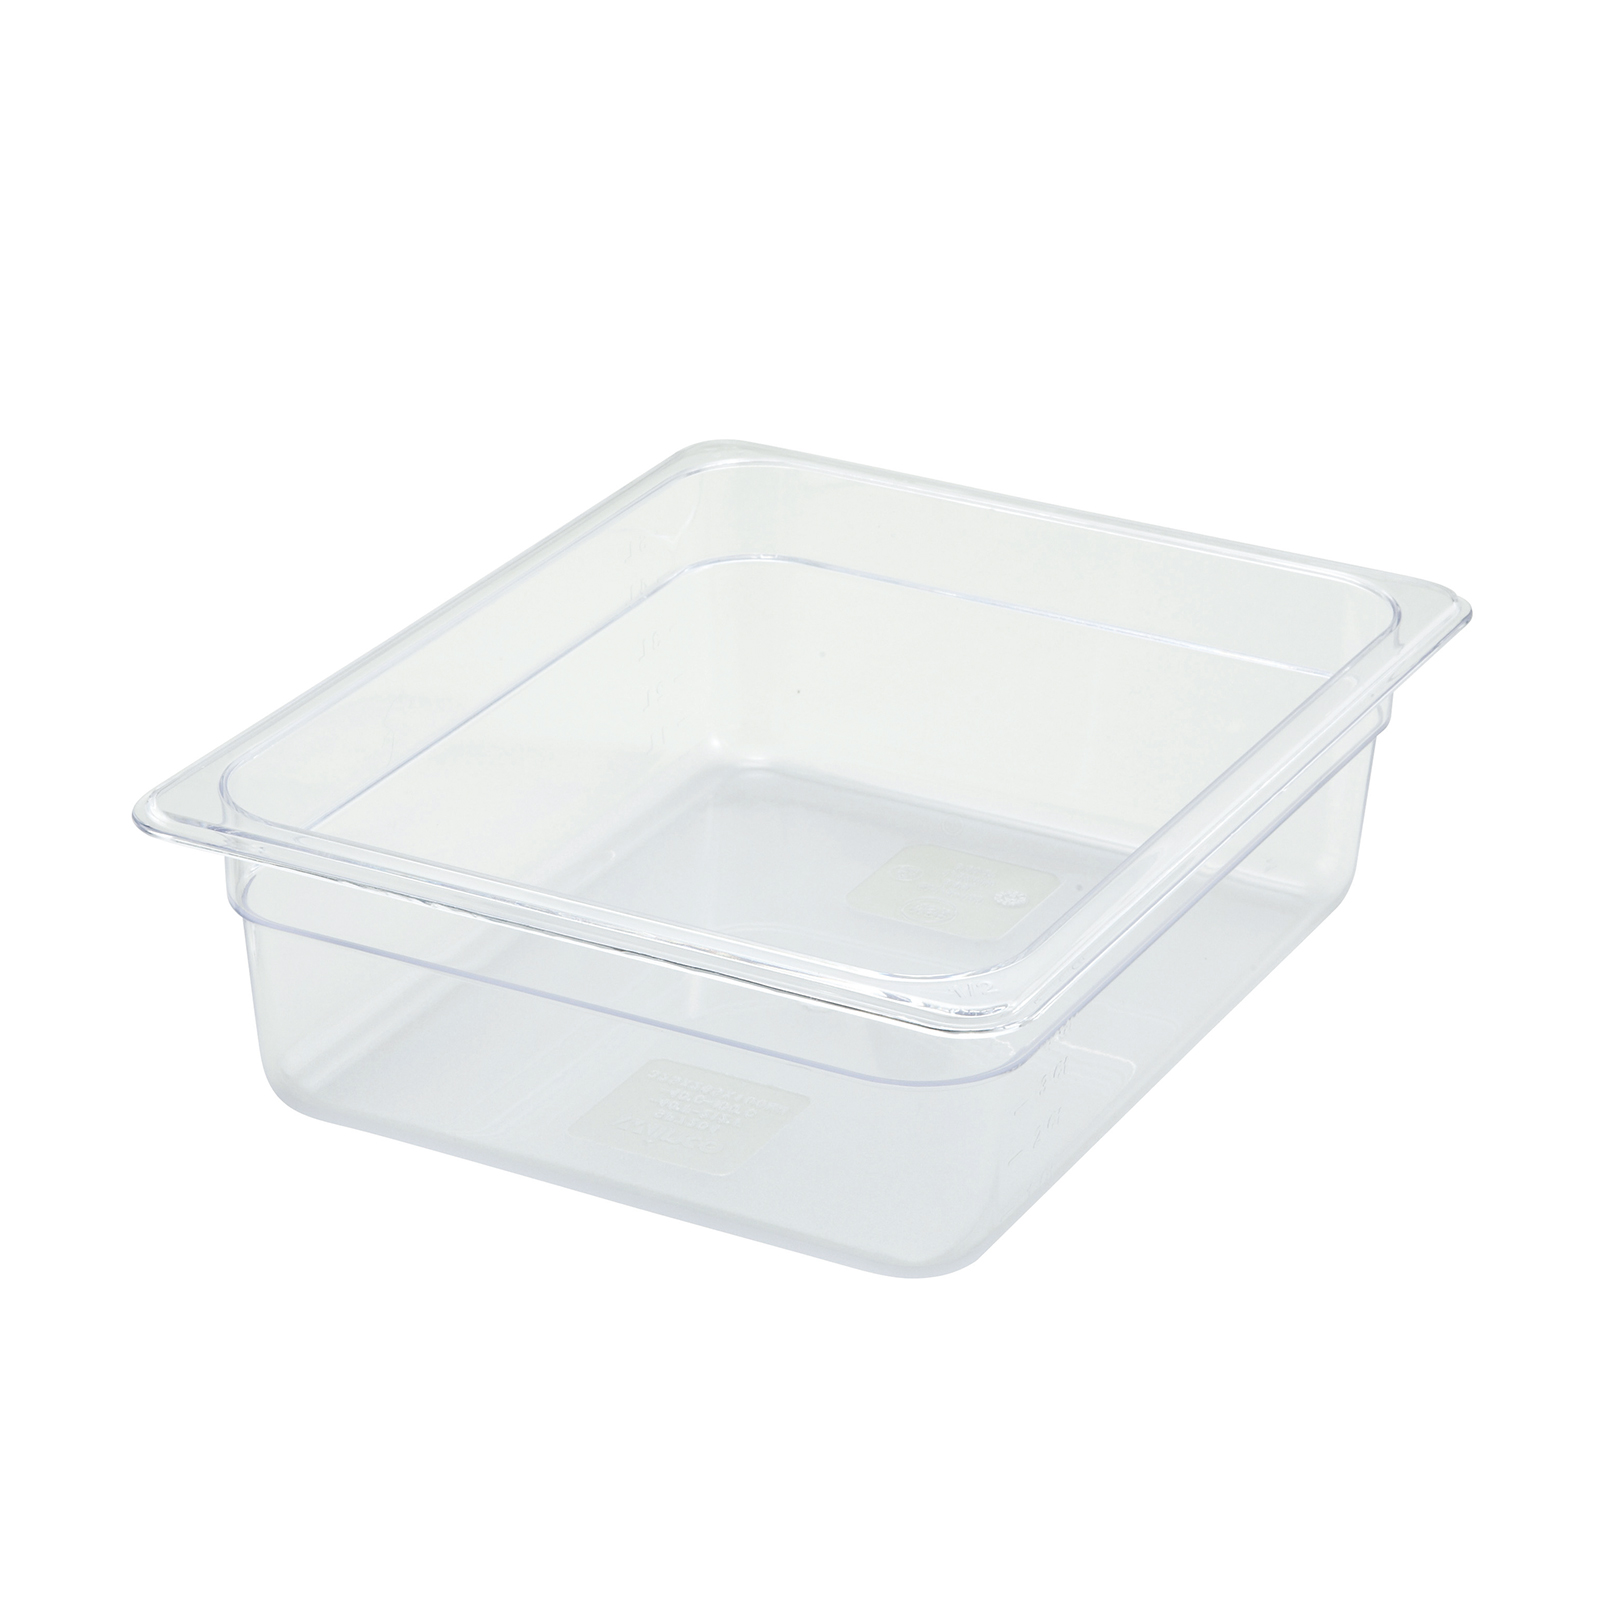 Winco SP7204 food pan, plastic